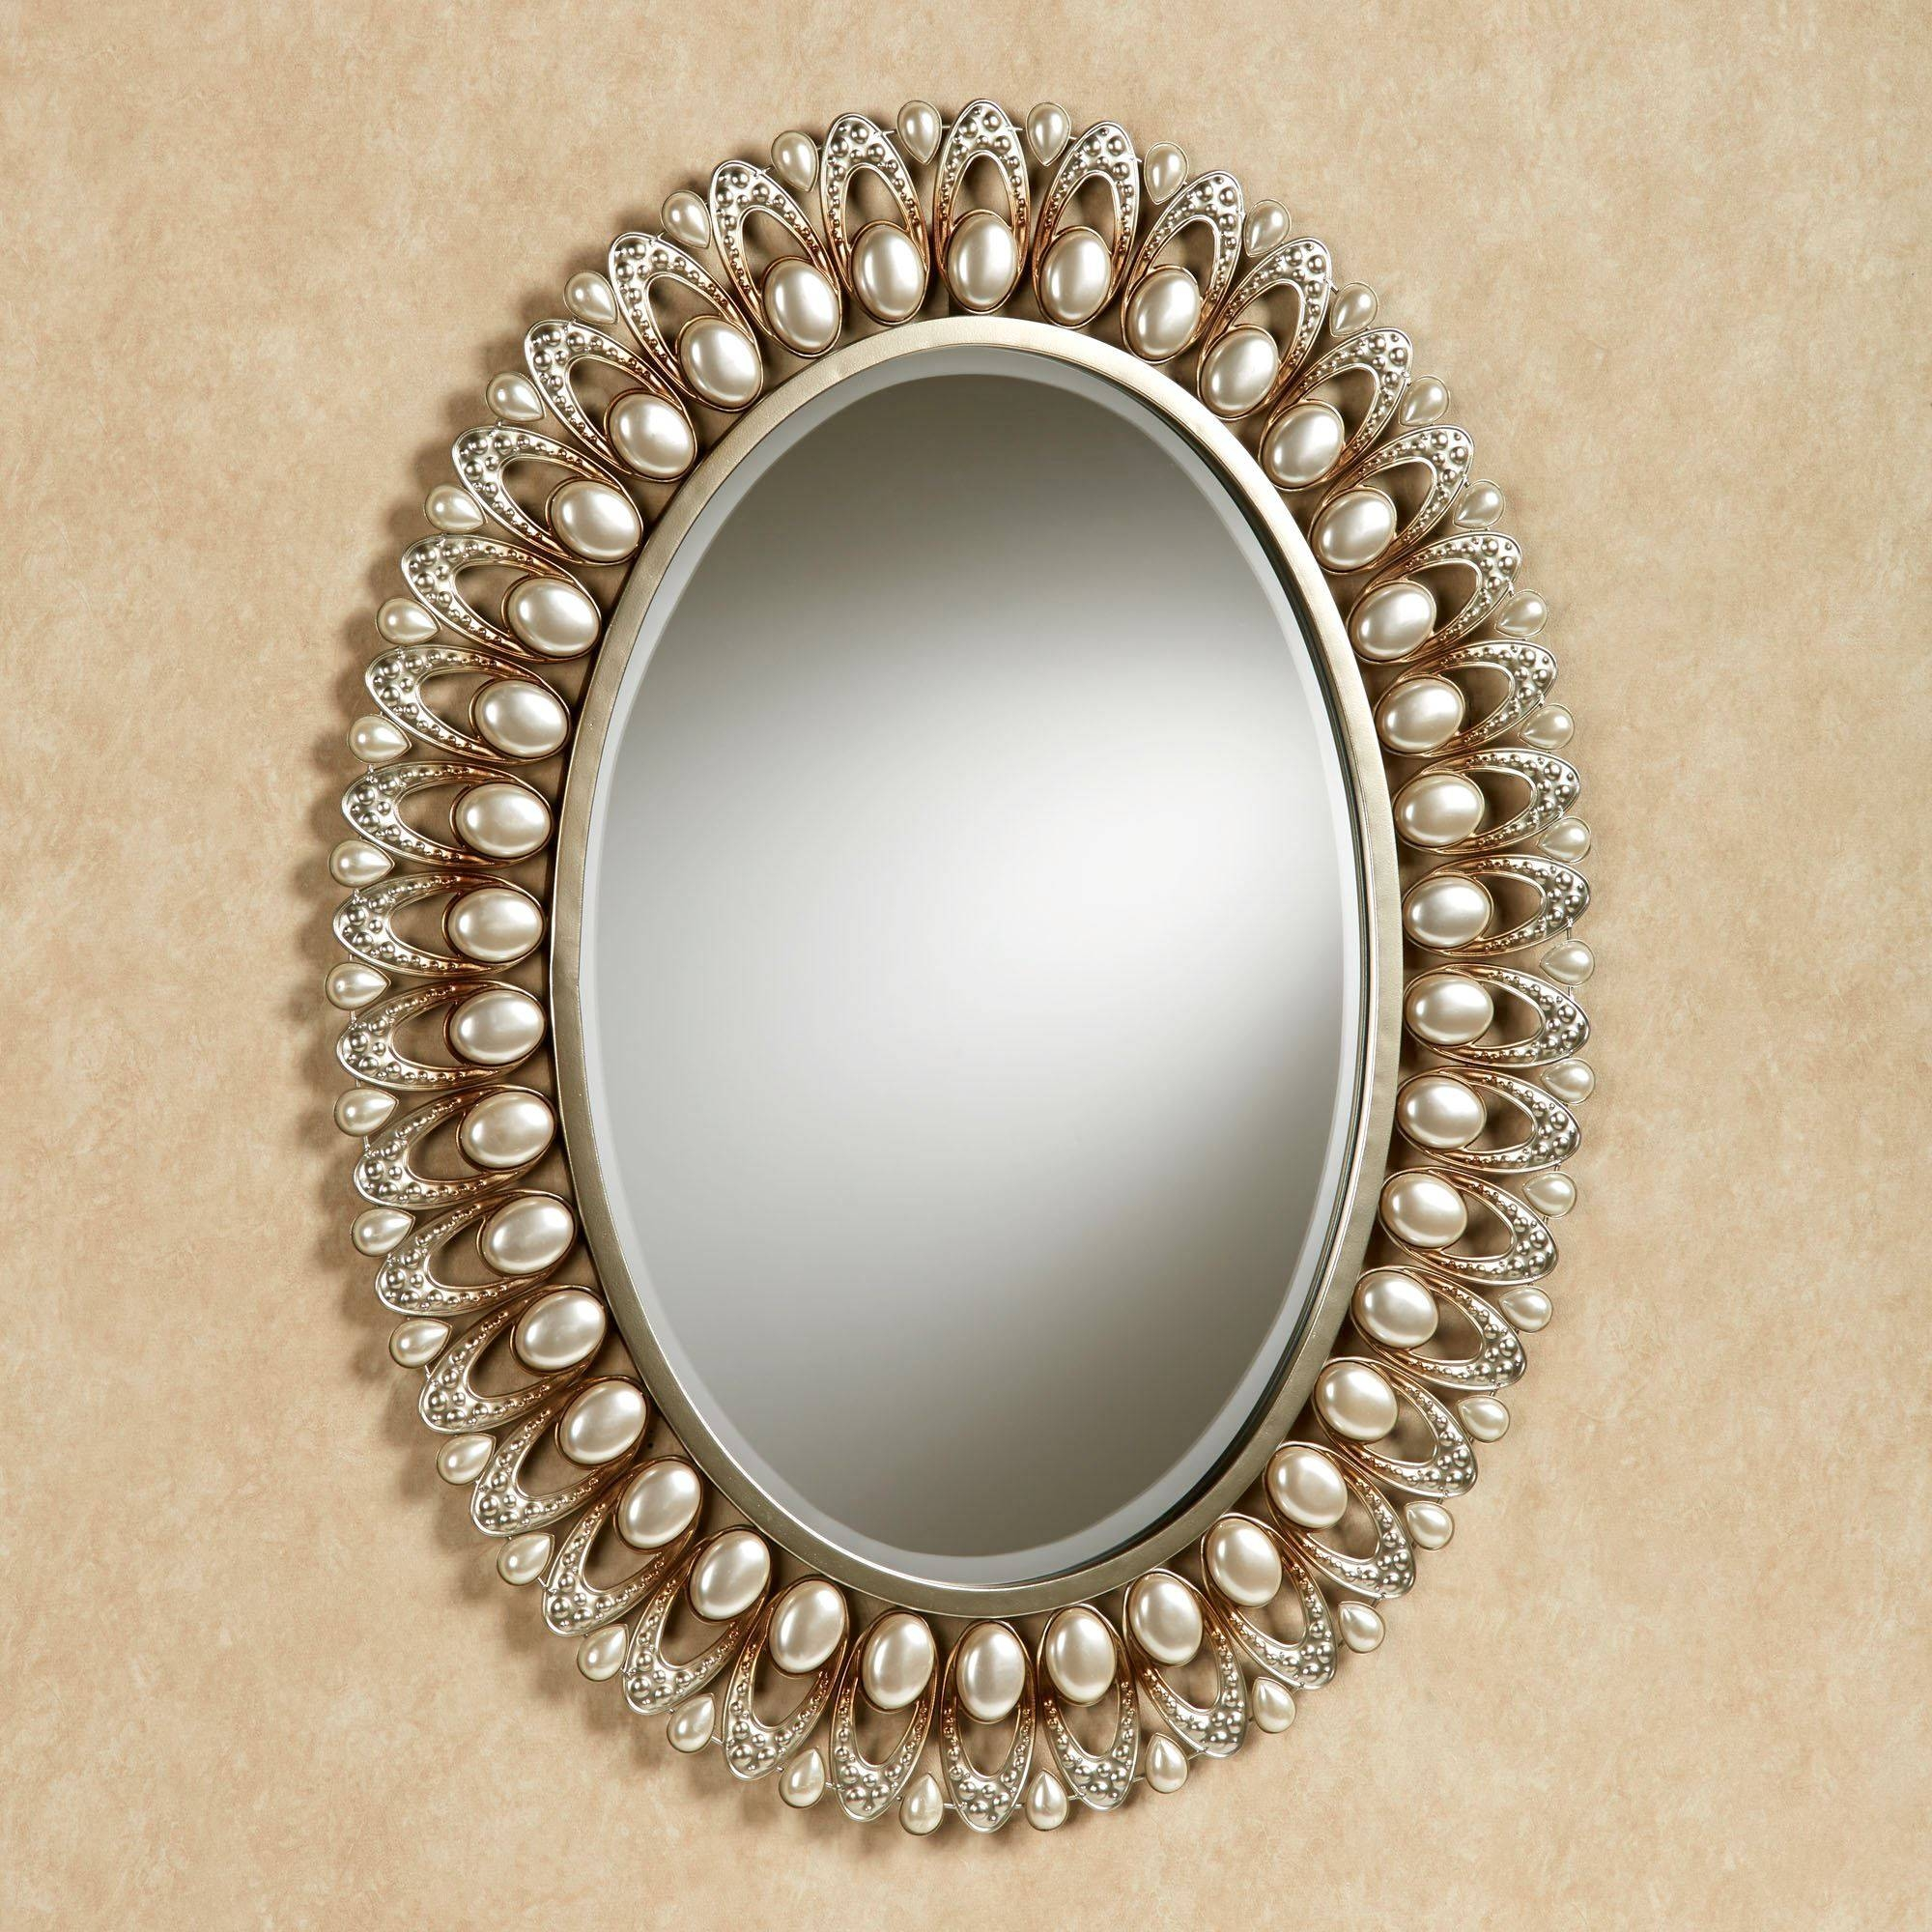 Oval Wall Mirrors Pertaining To Oval Mirrors For Walls (View 2 of 25)